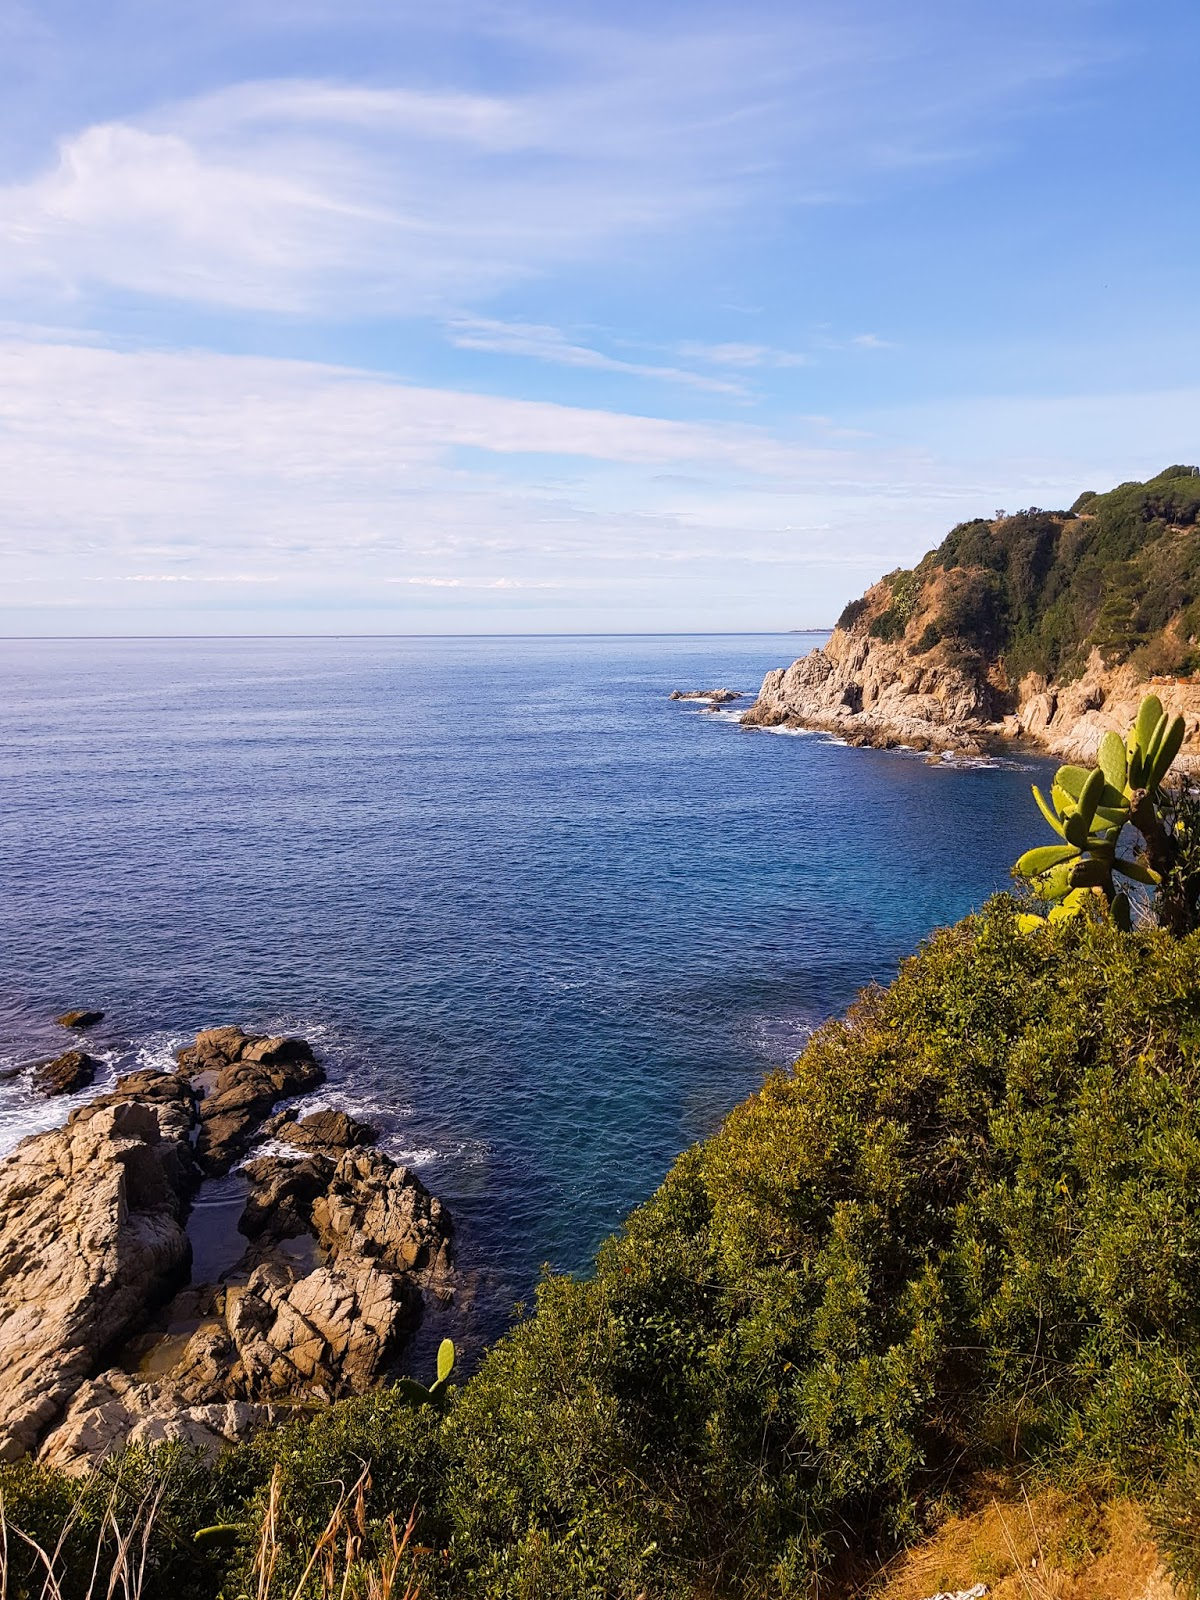 Photo on Thelifeofaglasgowgirl overlooking the ocean and some rock from a high point in Lloret de mar. Beautiful blue ocean with white waves crashing upon the rocks.